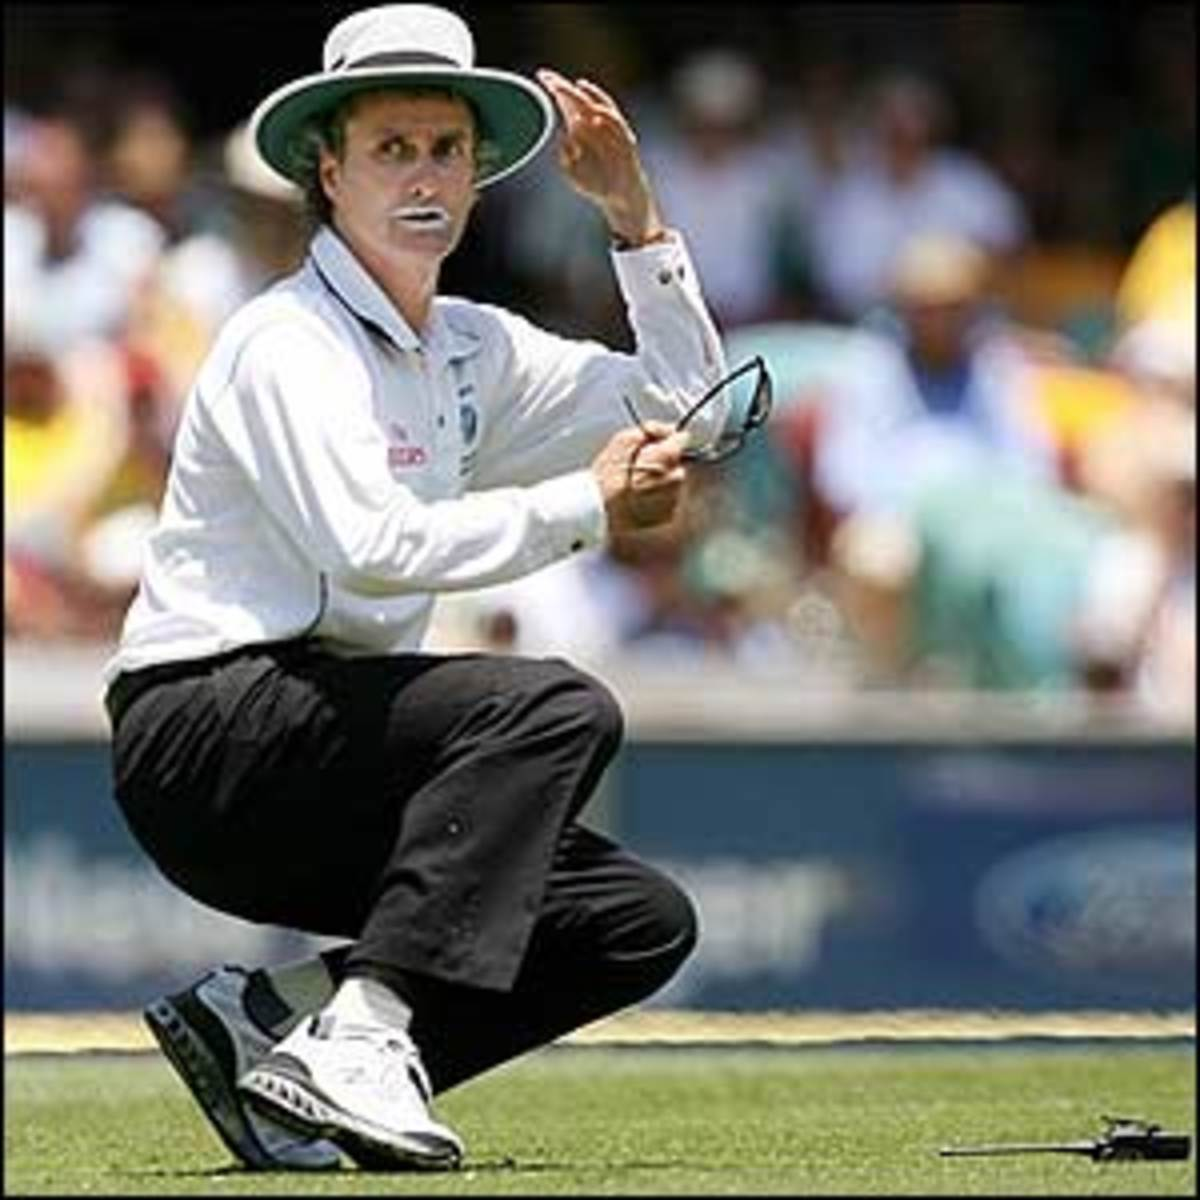 Umpire at a cricket game